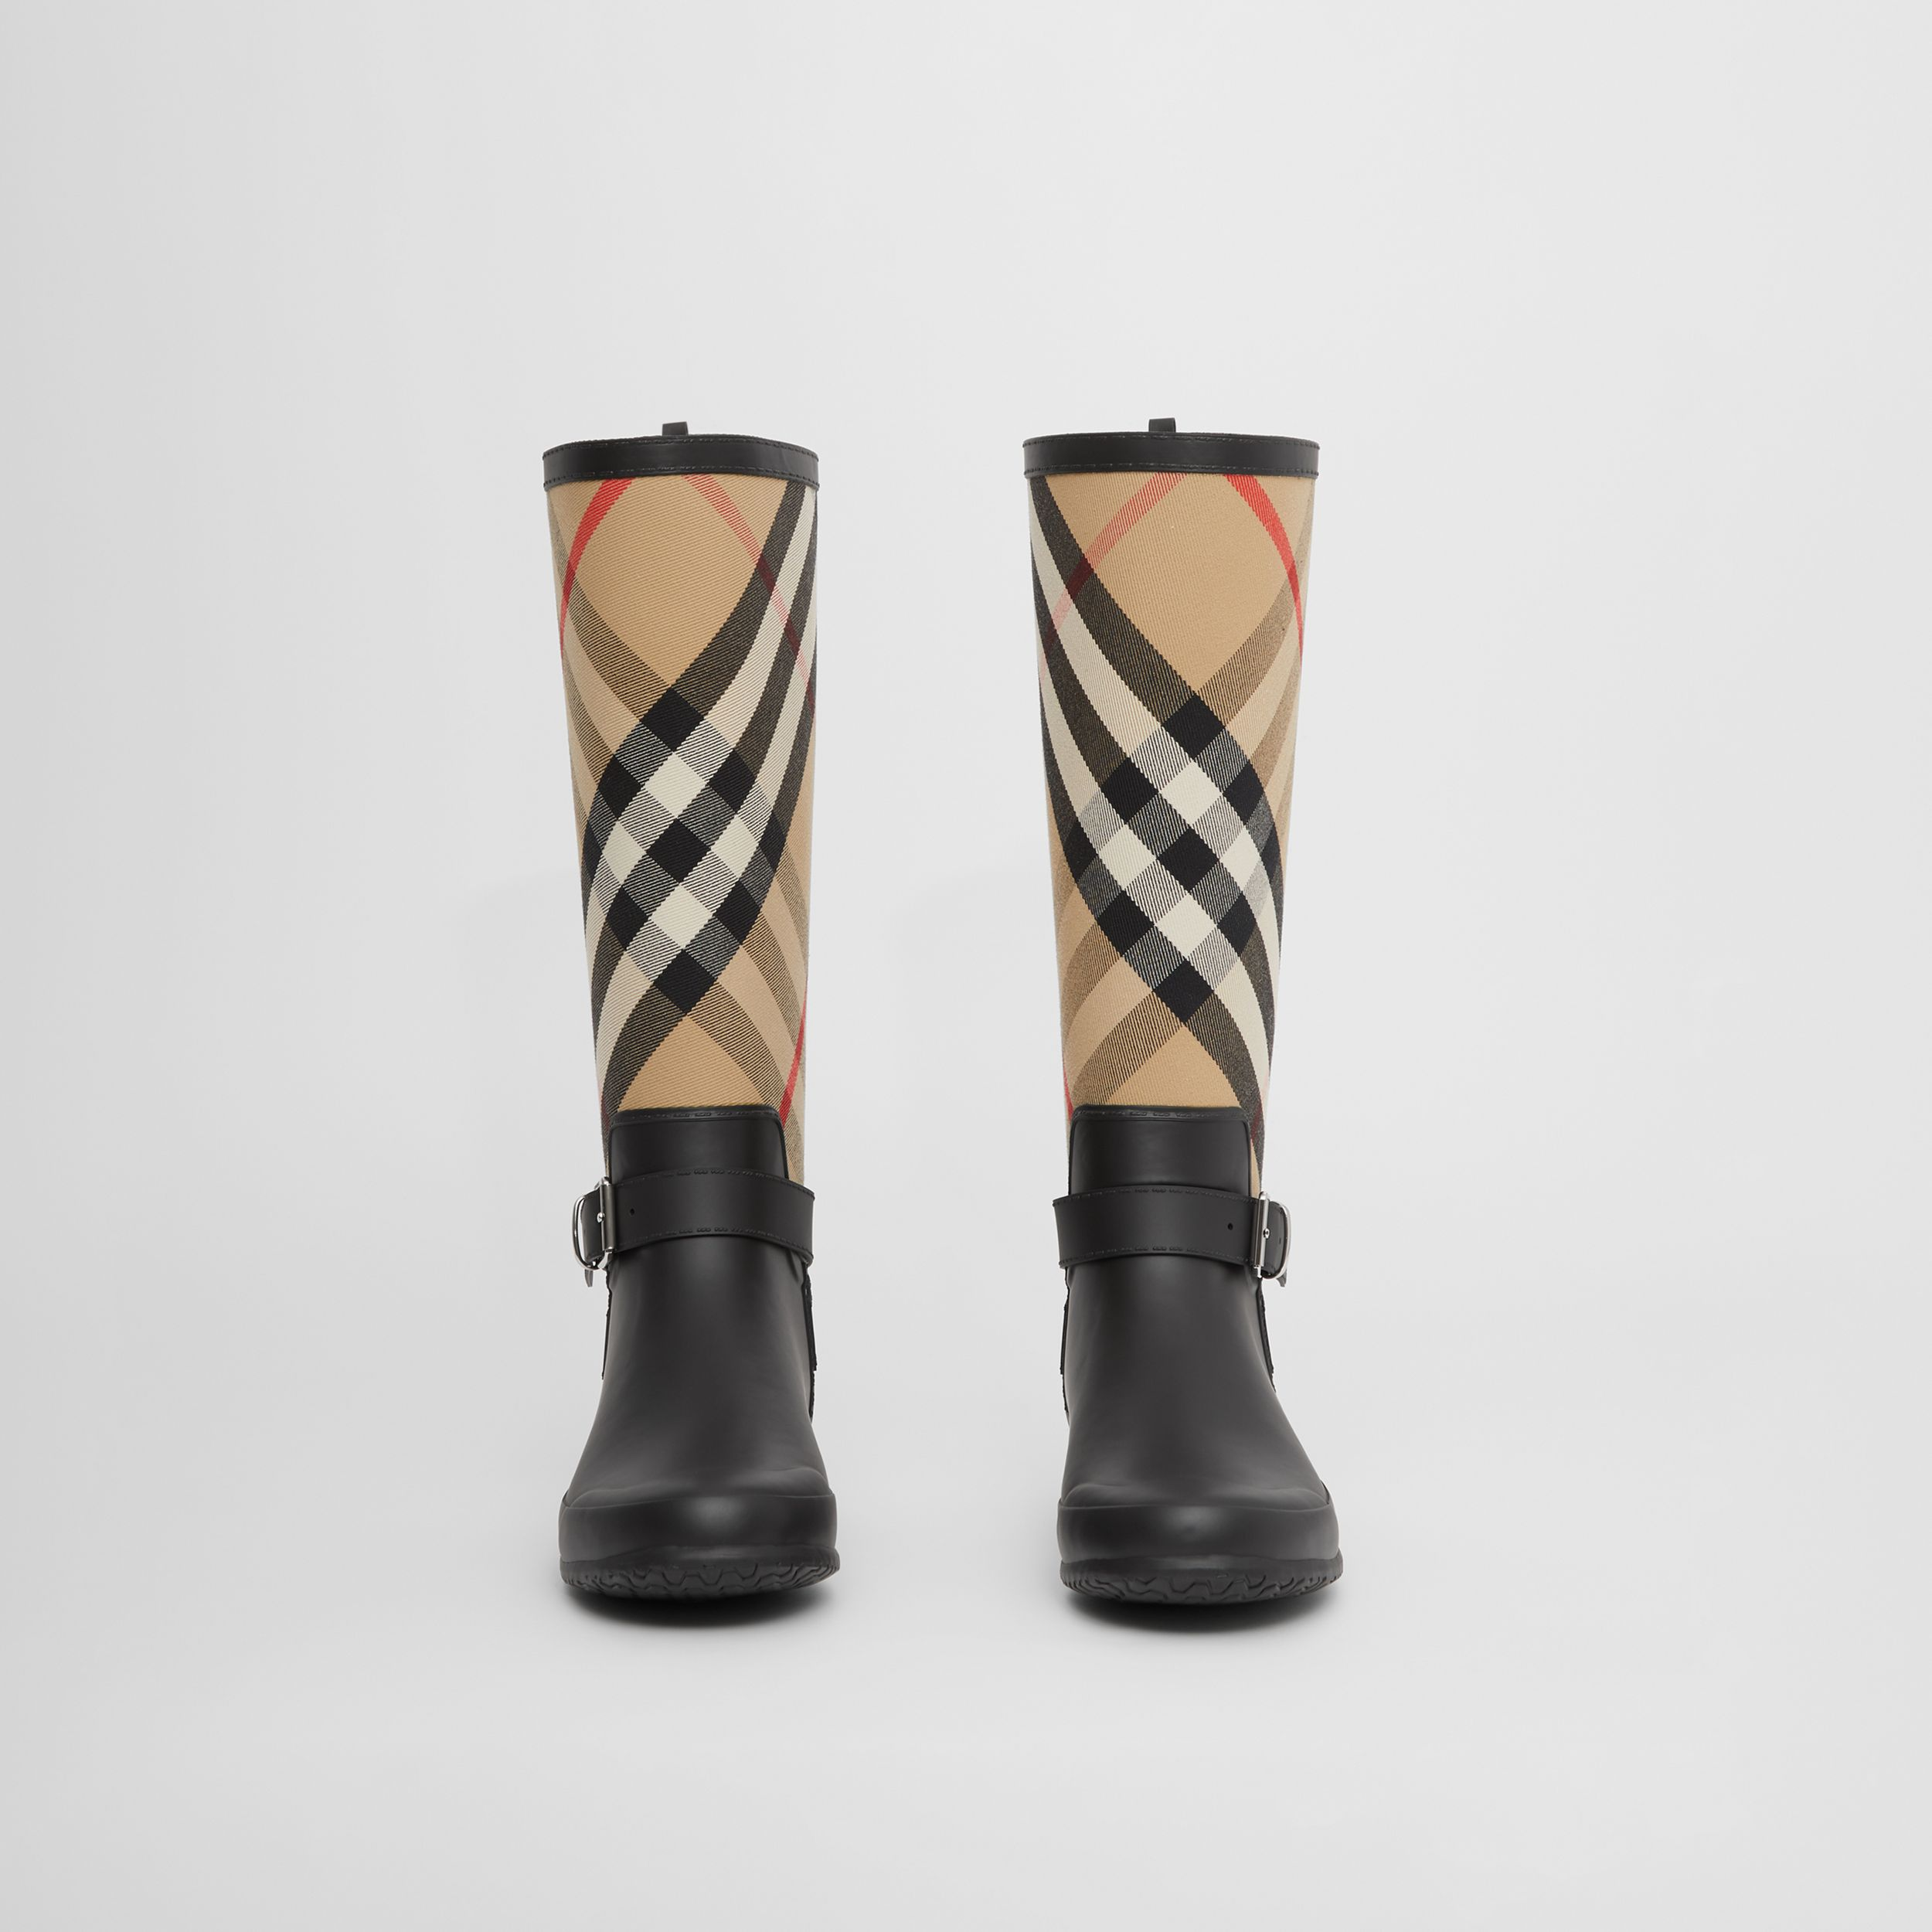 Strap Detail House Check and Rubber Rain Boots in Black/archive Beige - Women | Burberry Australia - 4